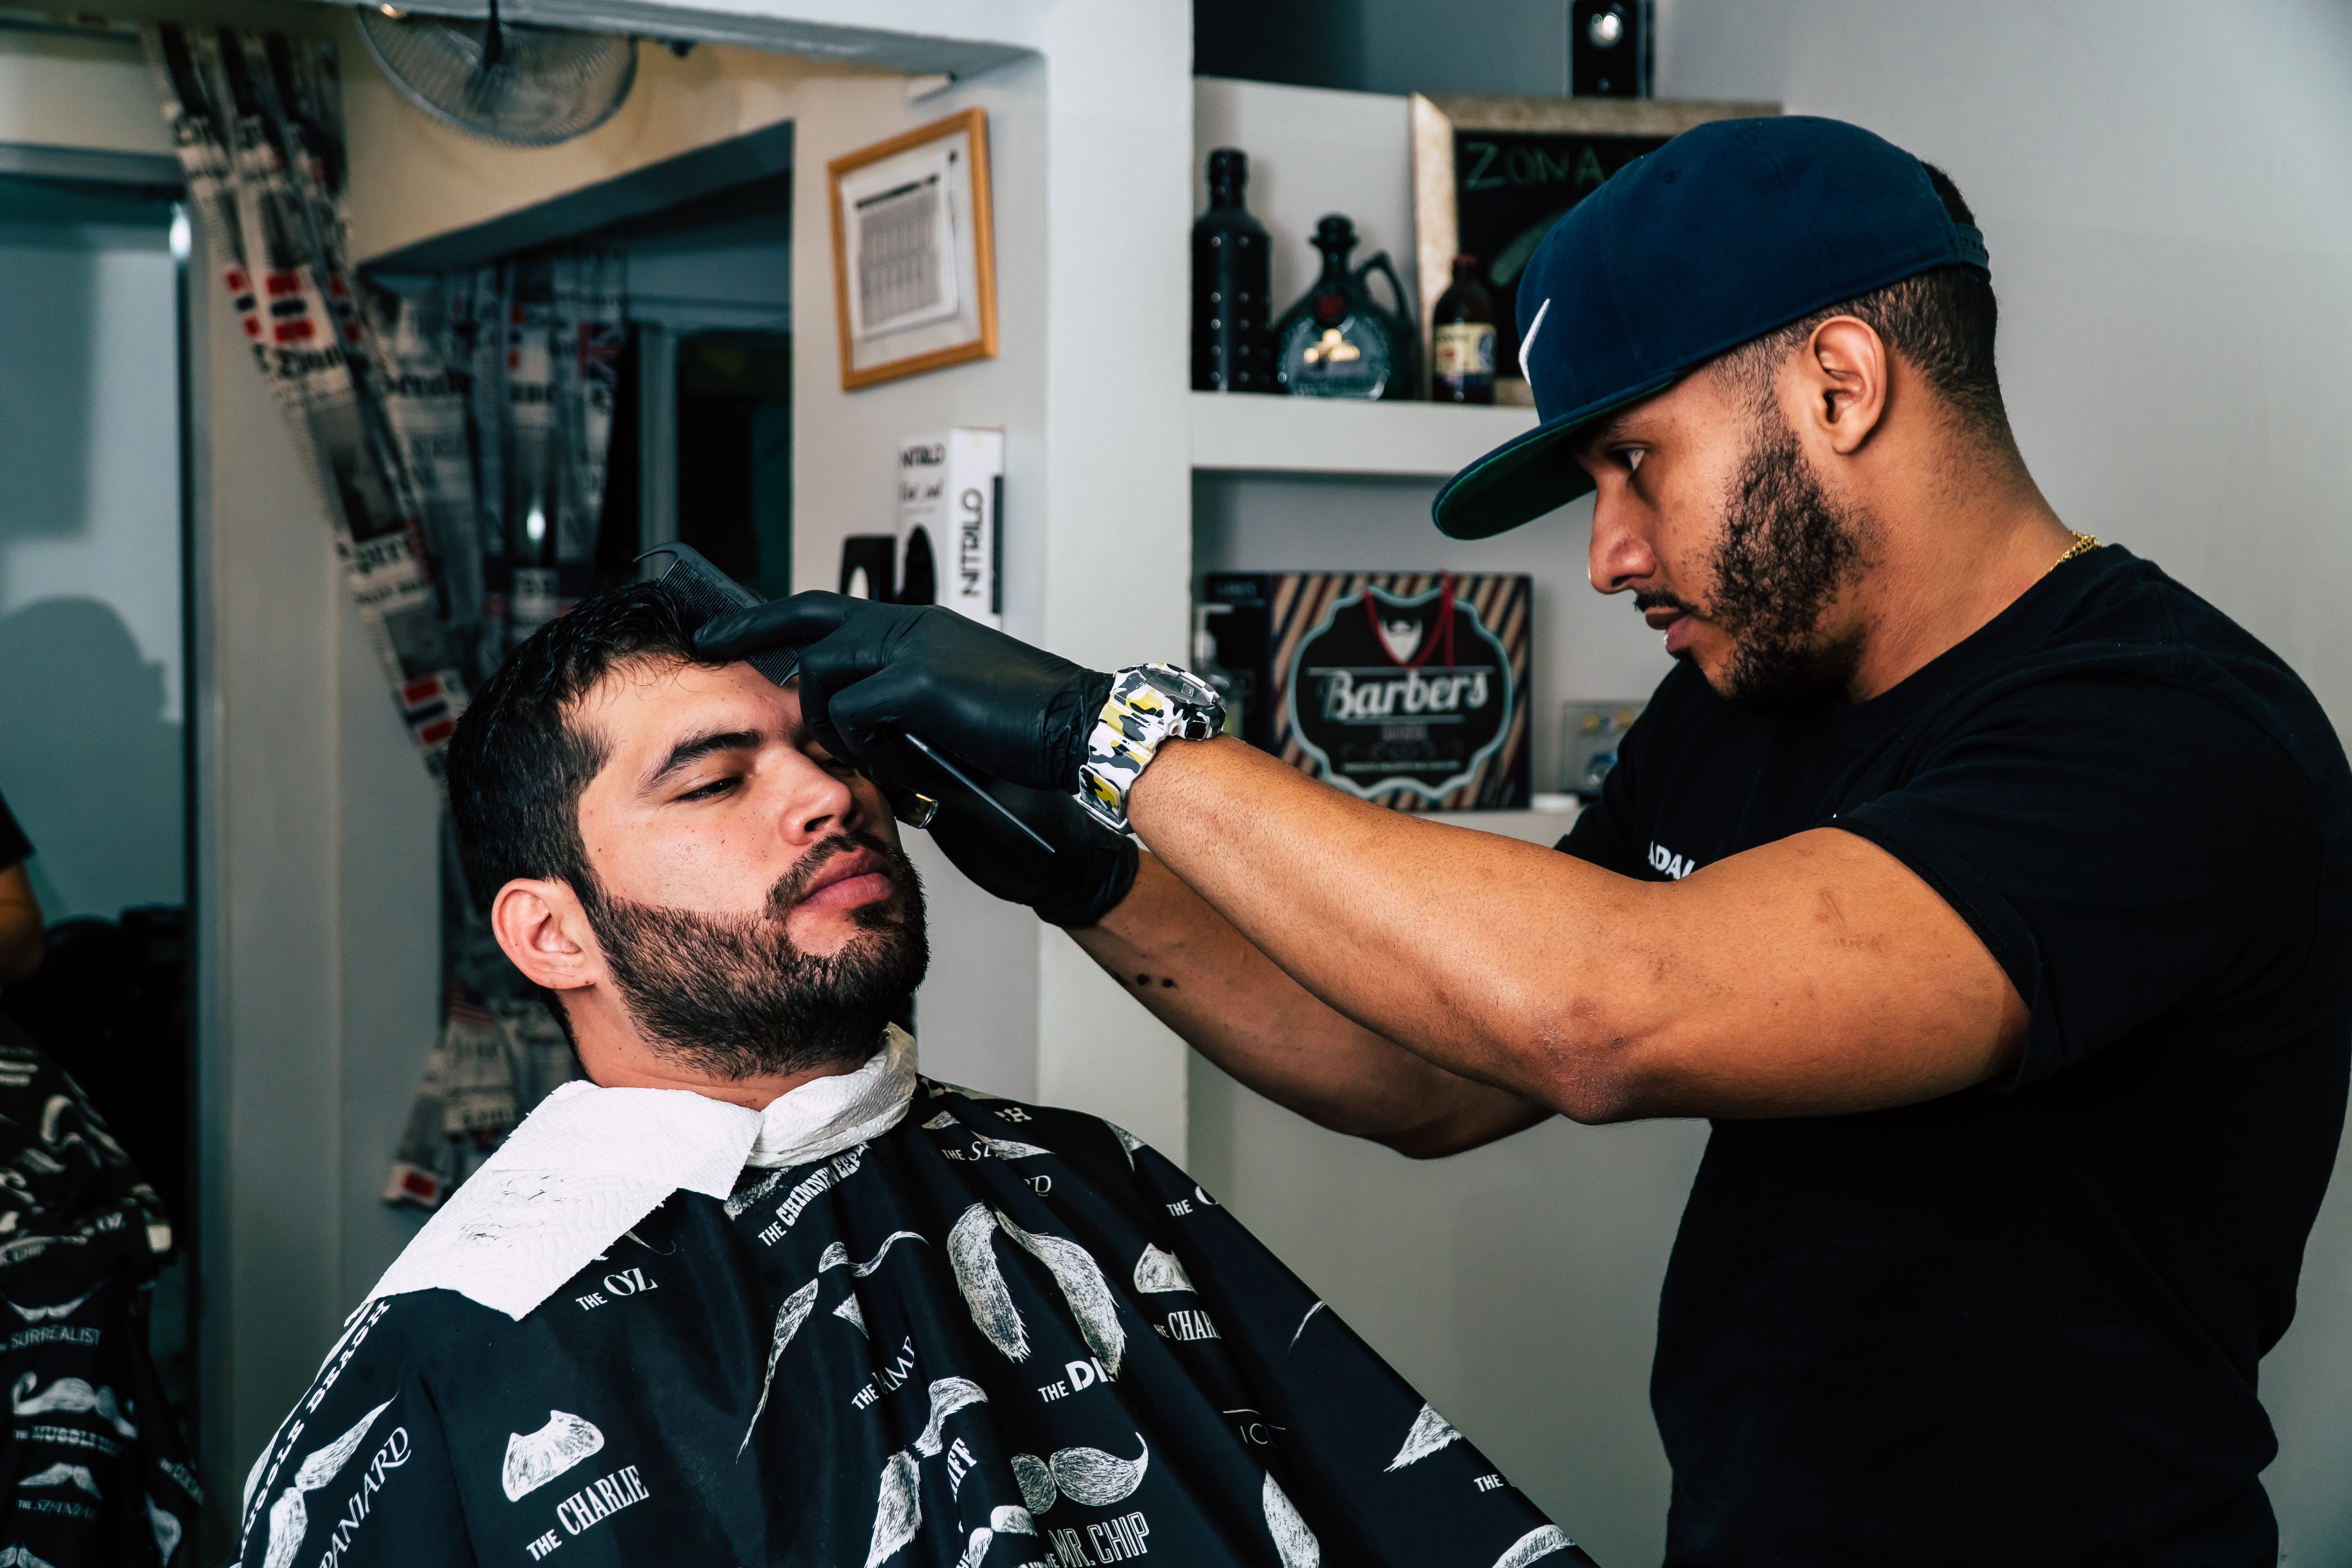 Man Wearing Black Shirt Trimming the Hair of Man